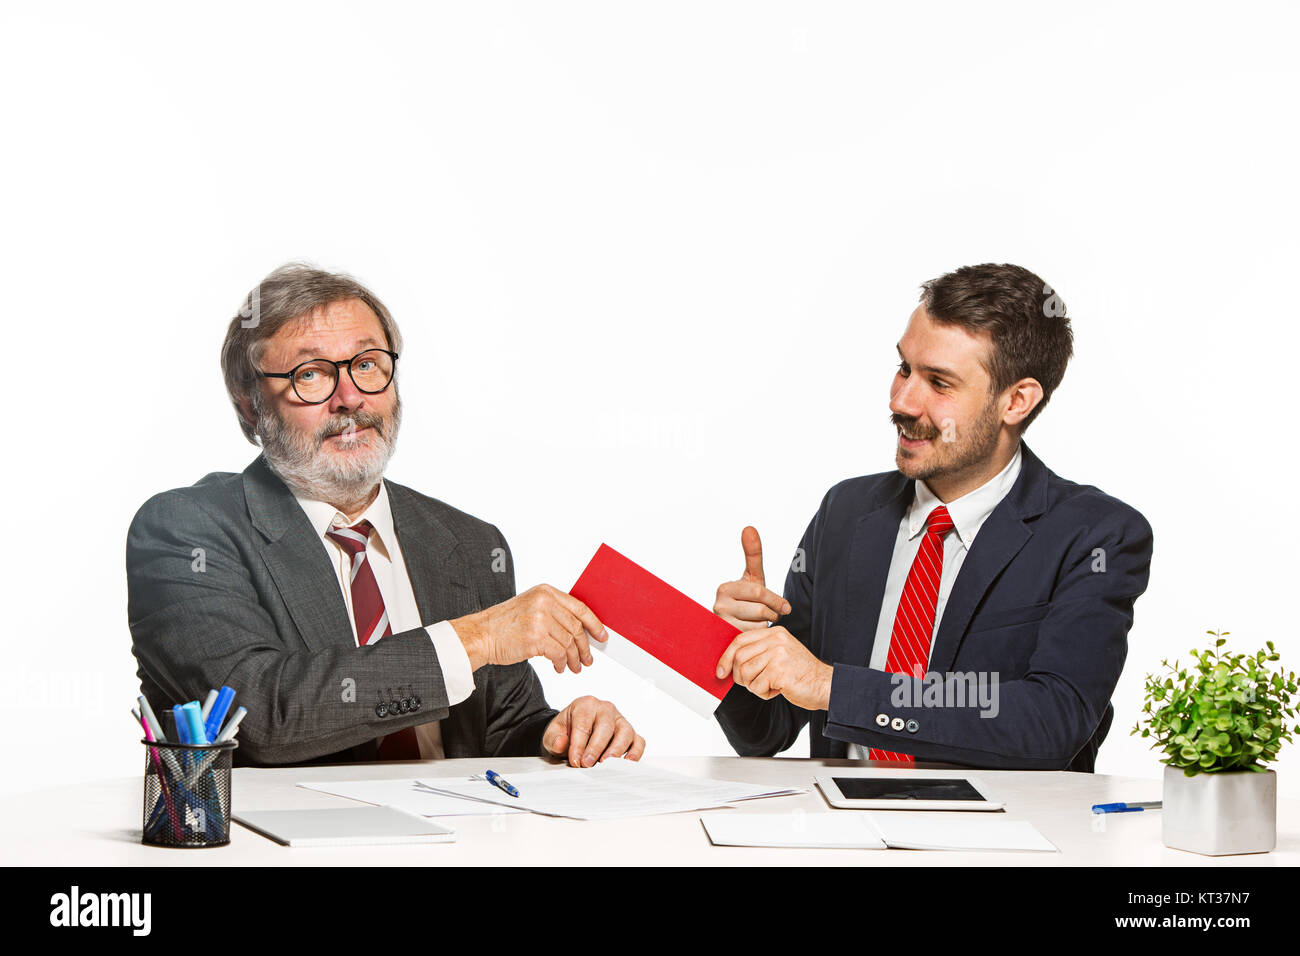 Concept - corruption. Businessman in a suit taking a bribe Stock Photo